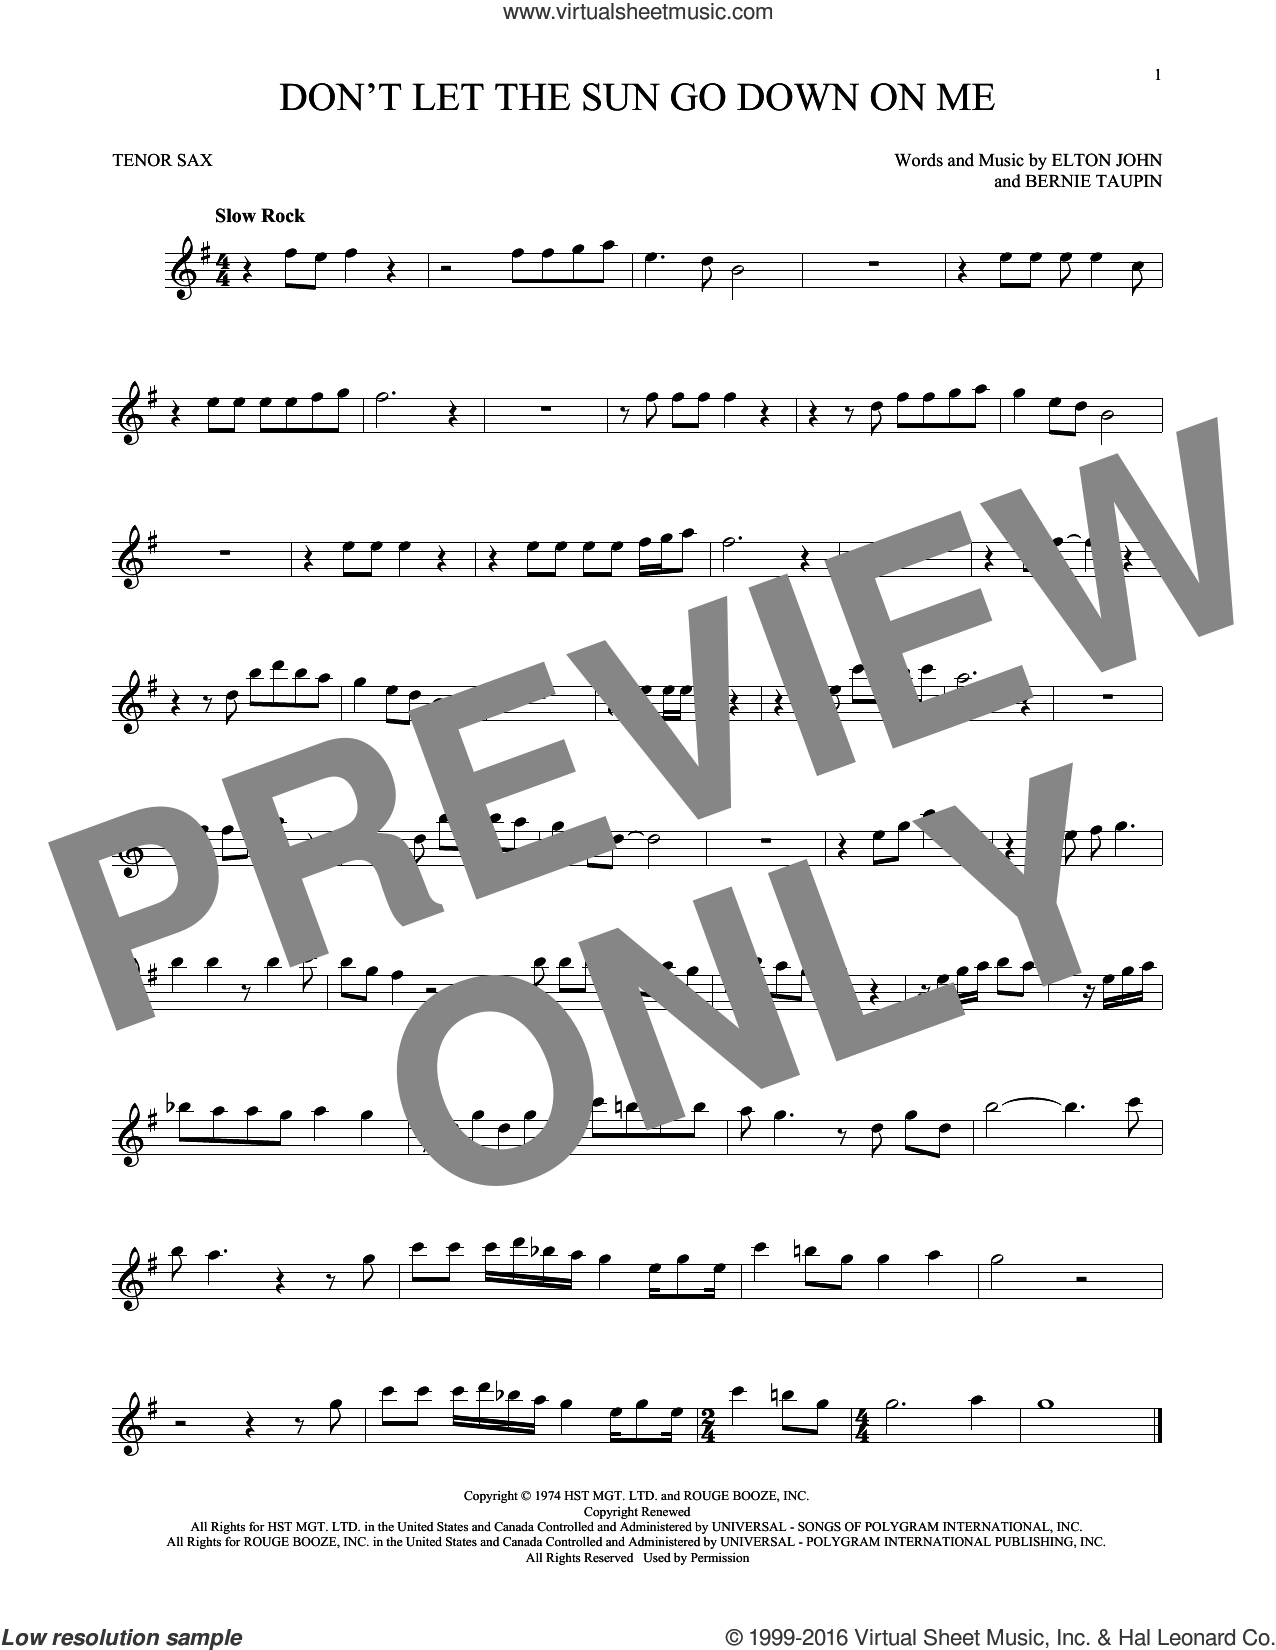 Don't Let The Sun Go Down On Me sheet music for tenor saxophone solo by Elton John & George Michael, David Archuleta, Bernie Taupin and Elton John, intermediate tenor saxophone. Score Image Preview.